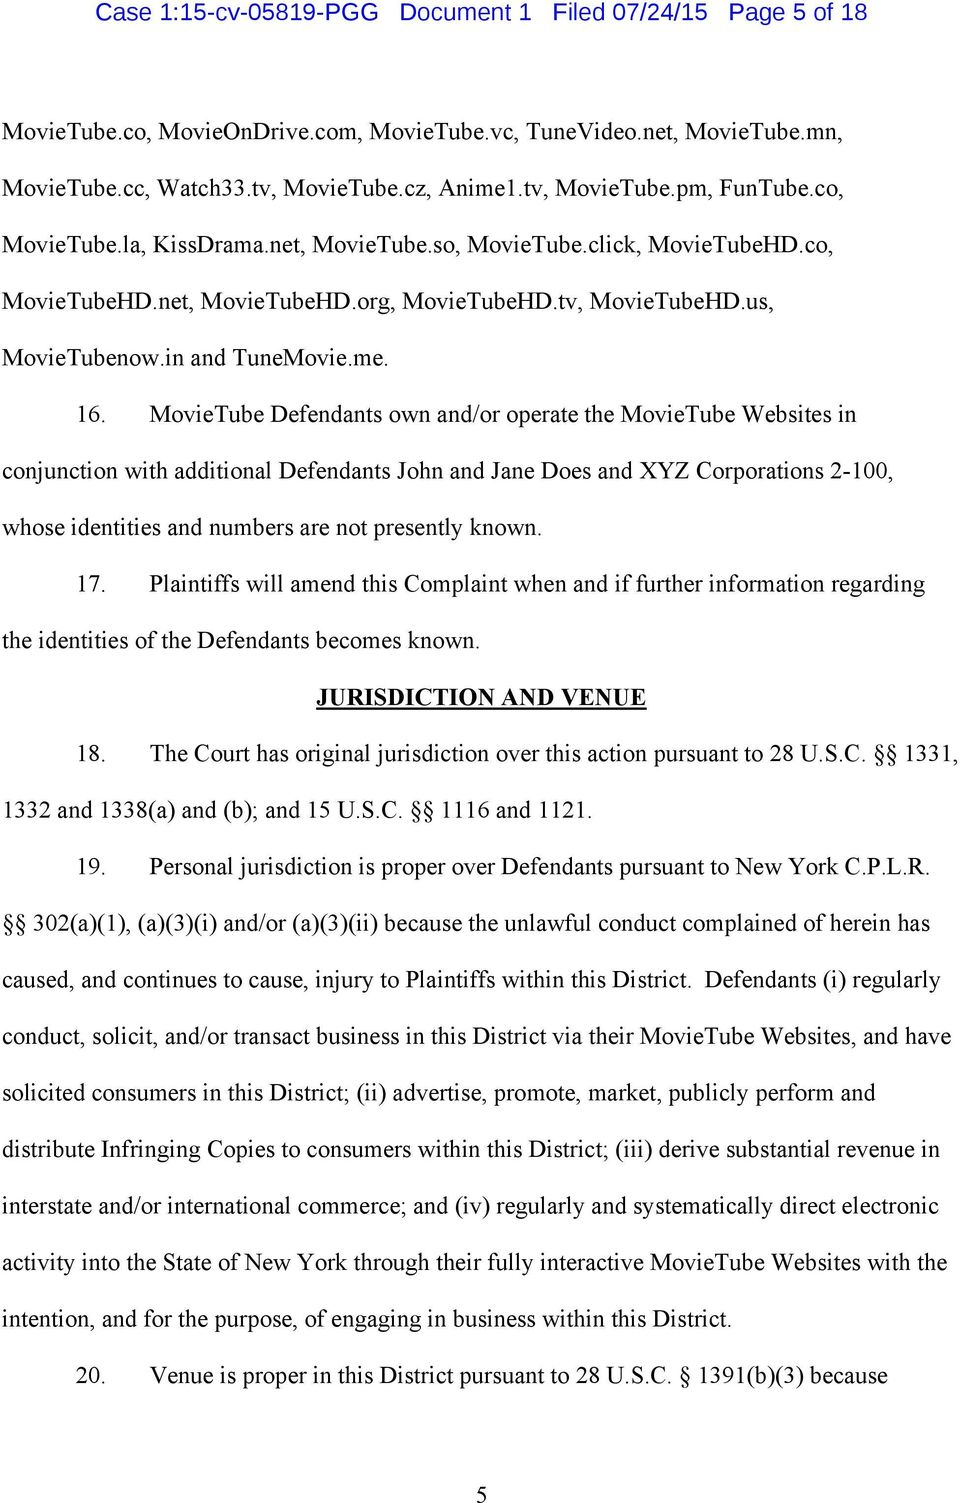 MovieTube Defendants own and/or operate the MovieTube Websites in conjunction with additional Defendants John and Jane Does and XYZ Corporations 2-100, whose identities and numbers are not presently